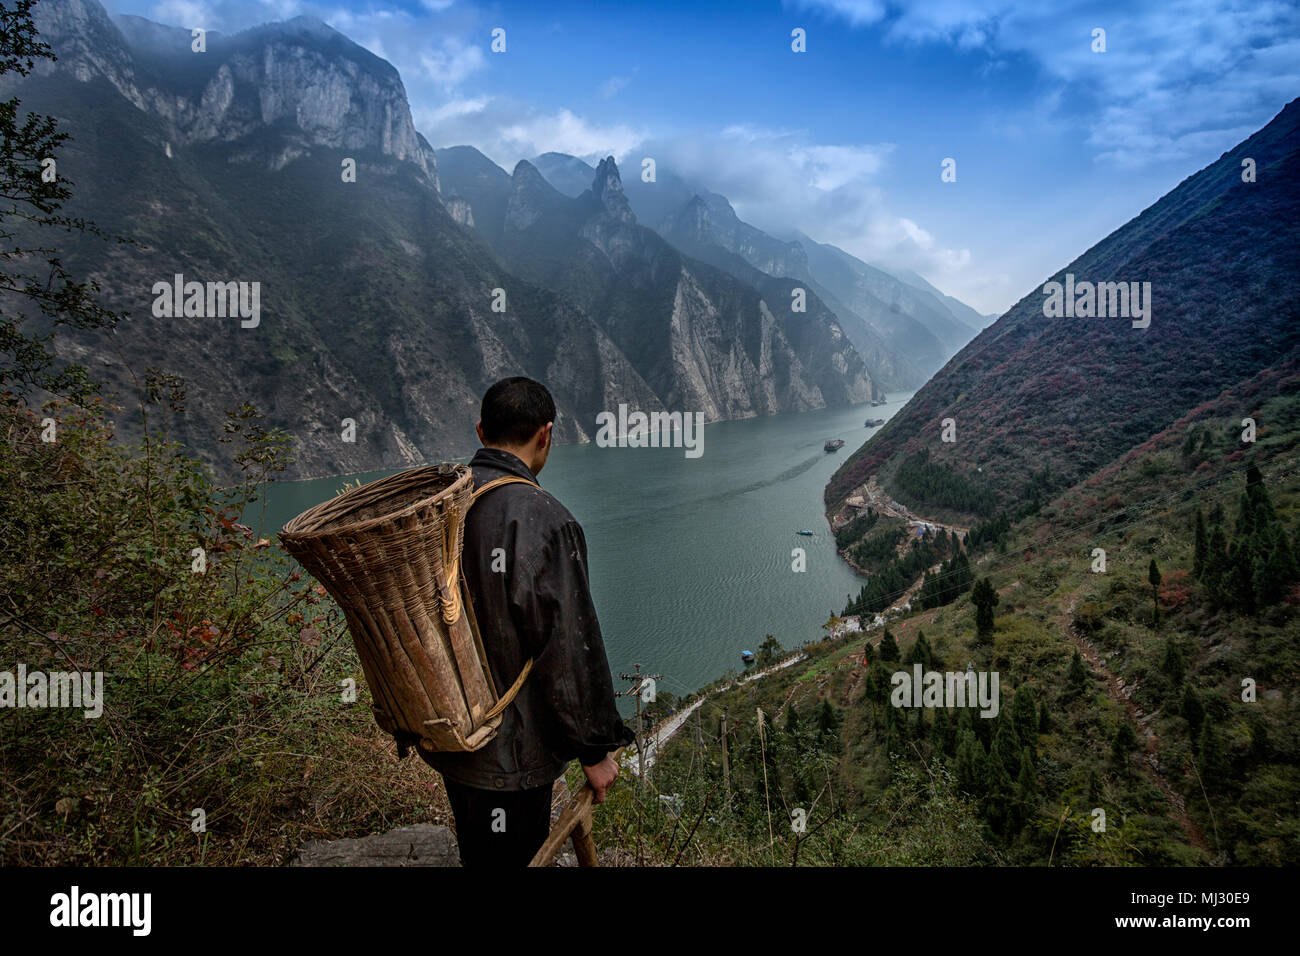 Wu gorge mountaineers - Stock Image